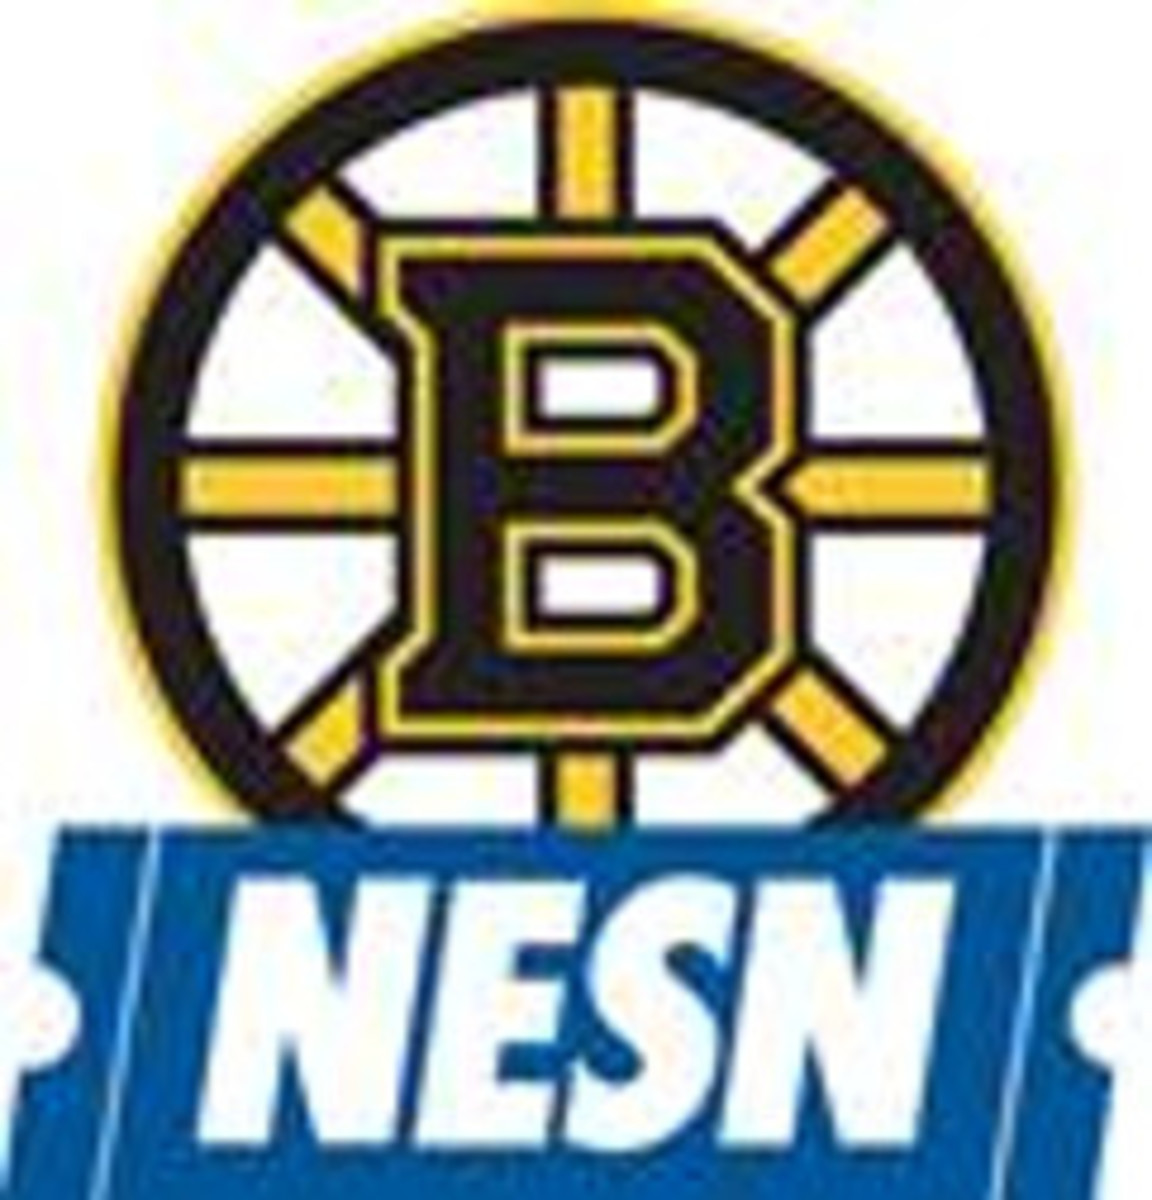 NESN Going Live With Boston Bruins Games.